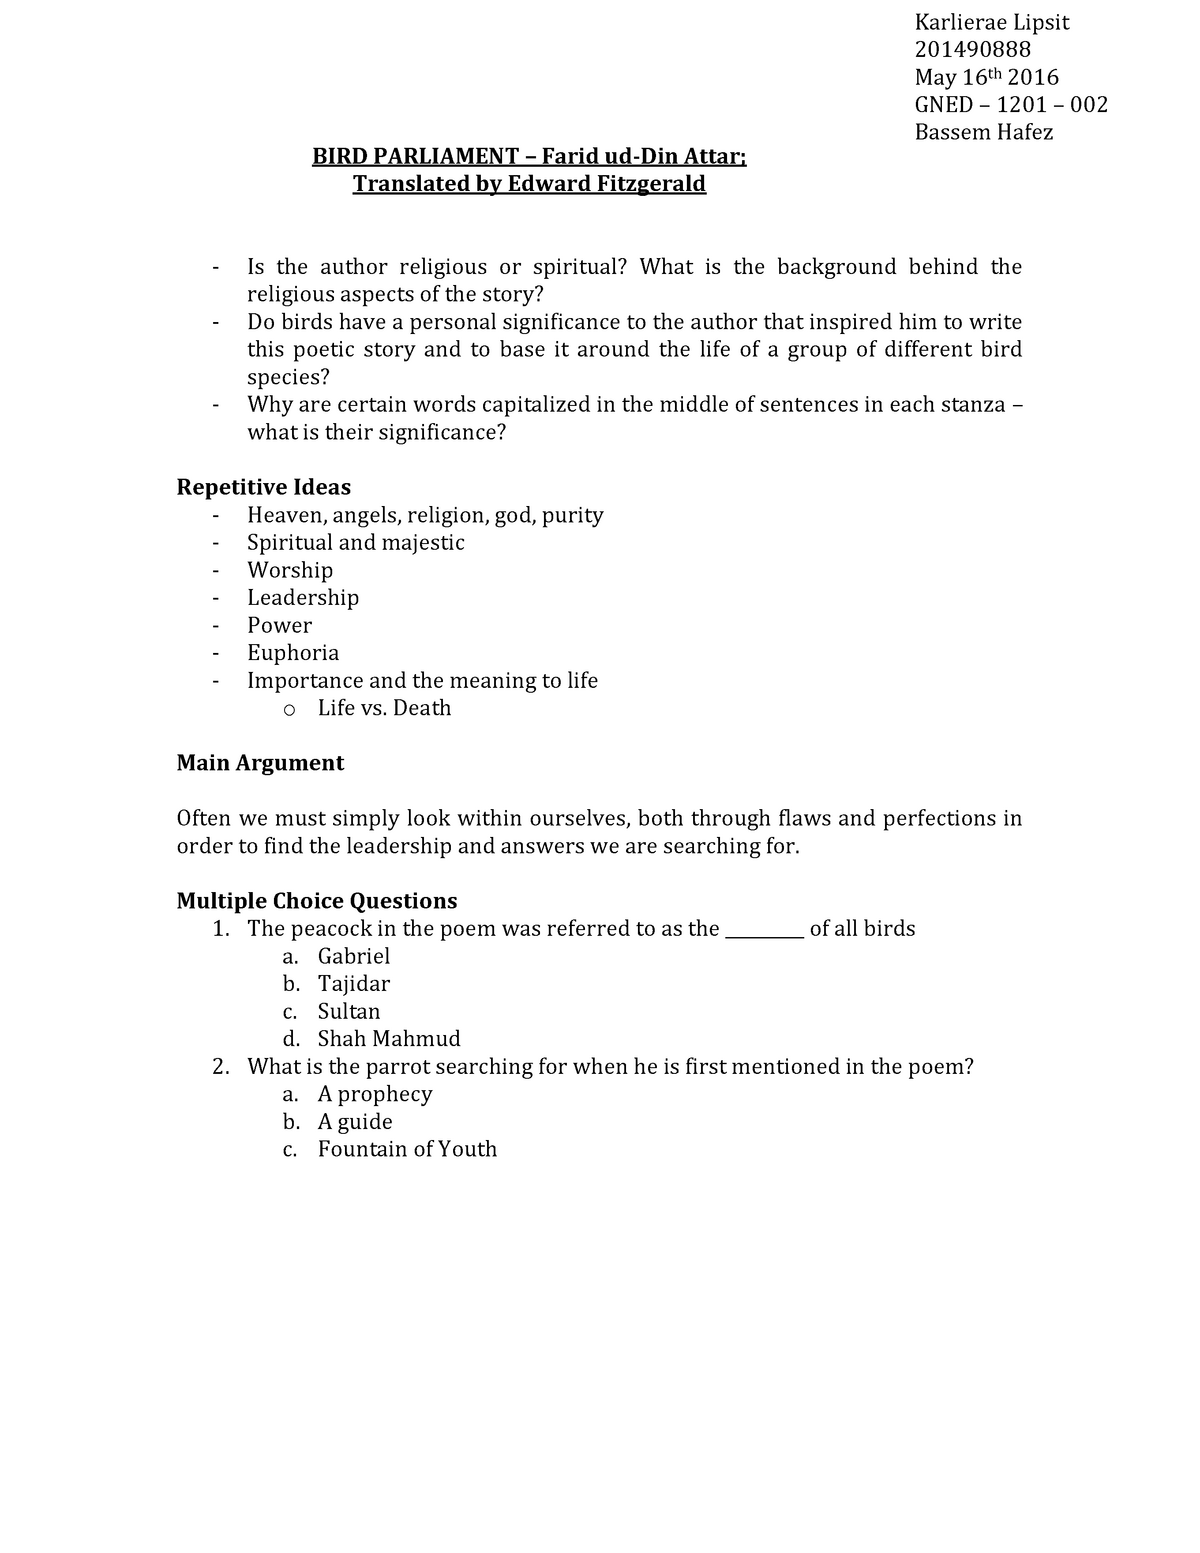 Summary Conference of the Birds - Lecture notes - Gned 1201